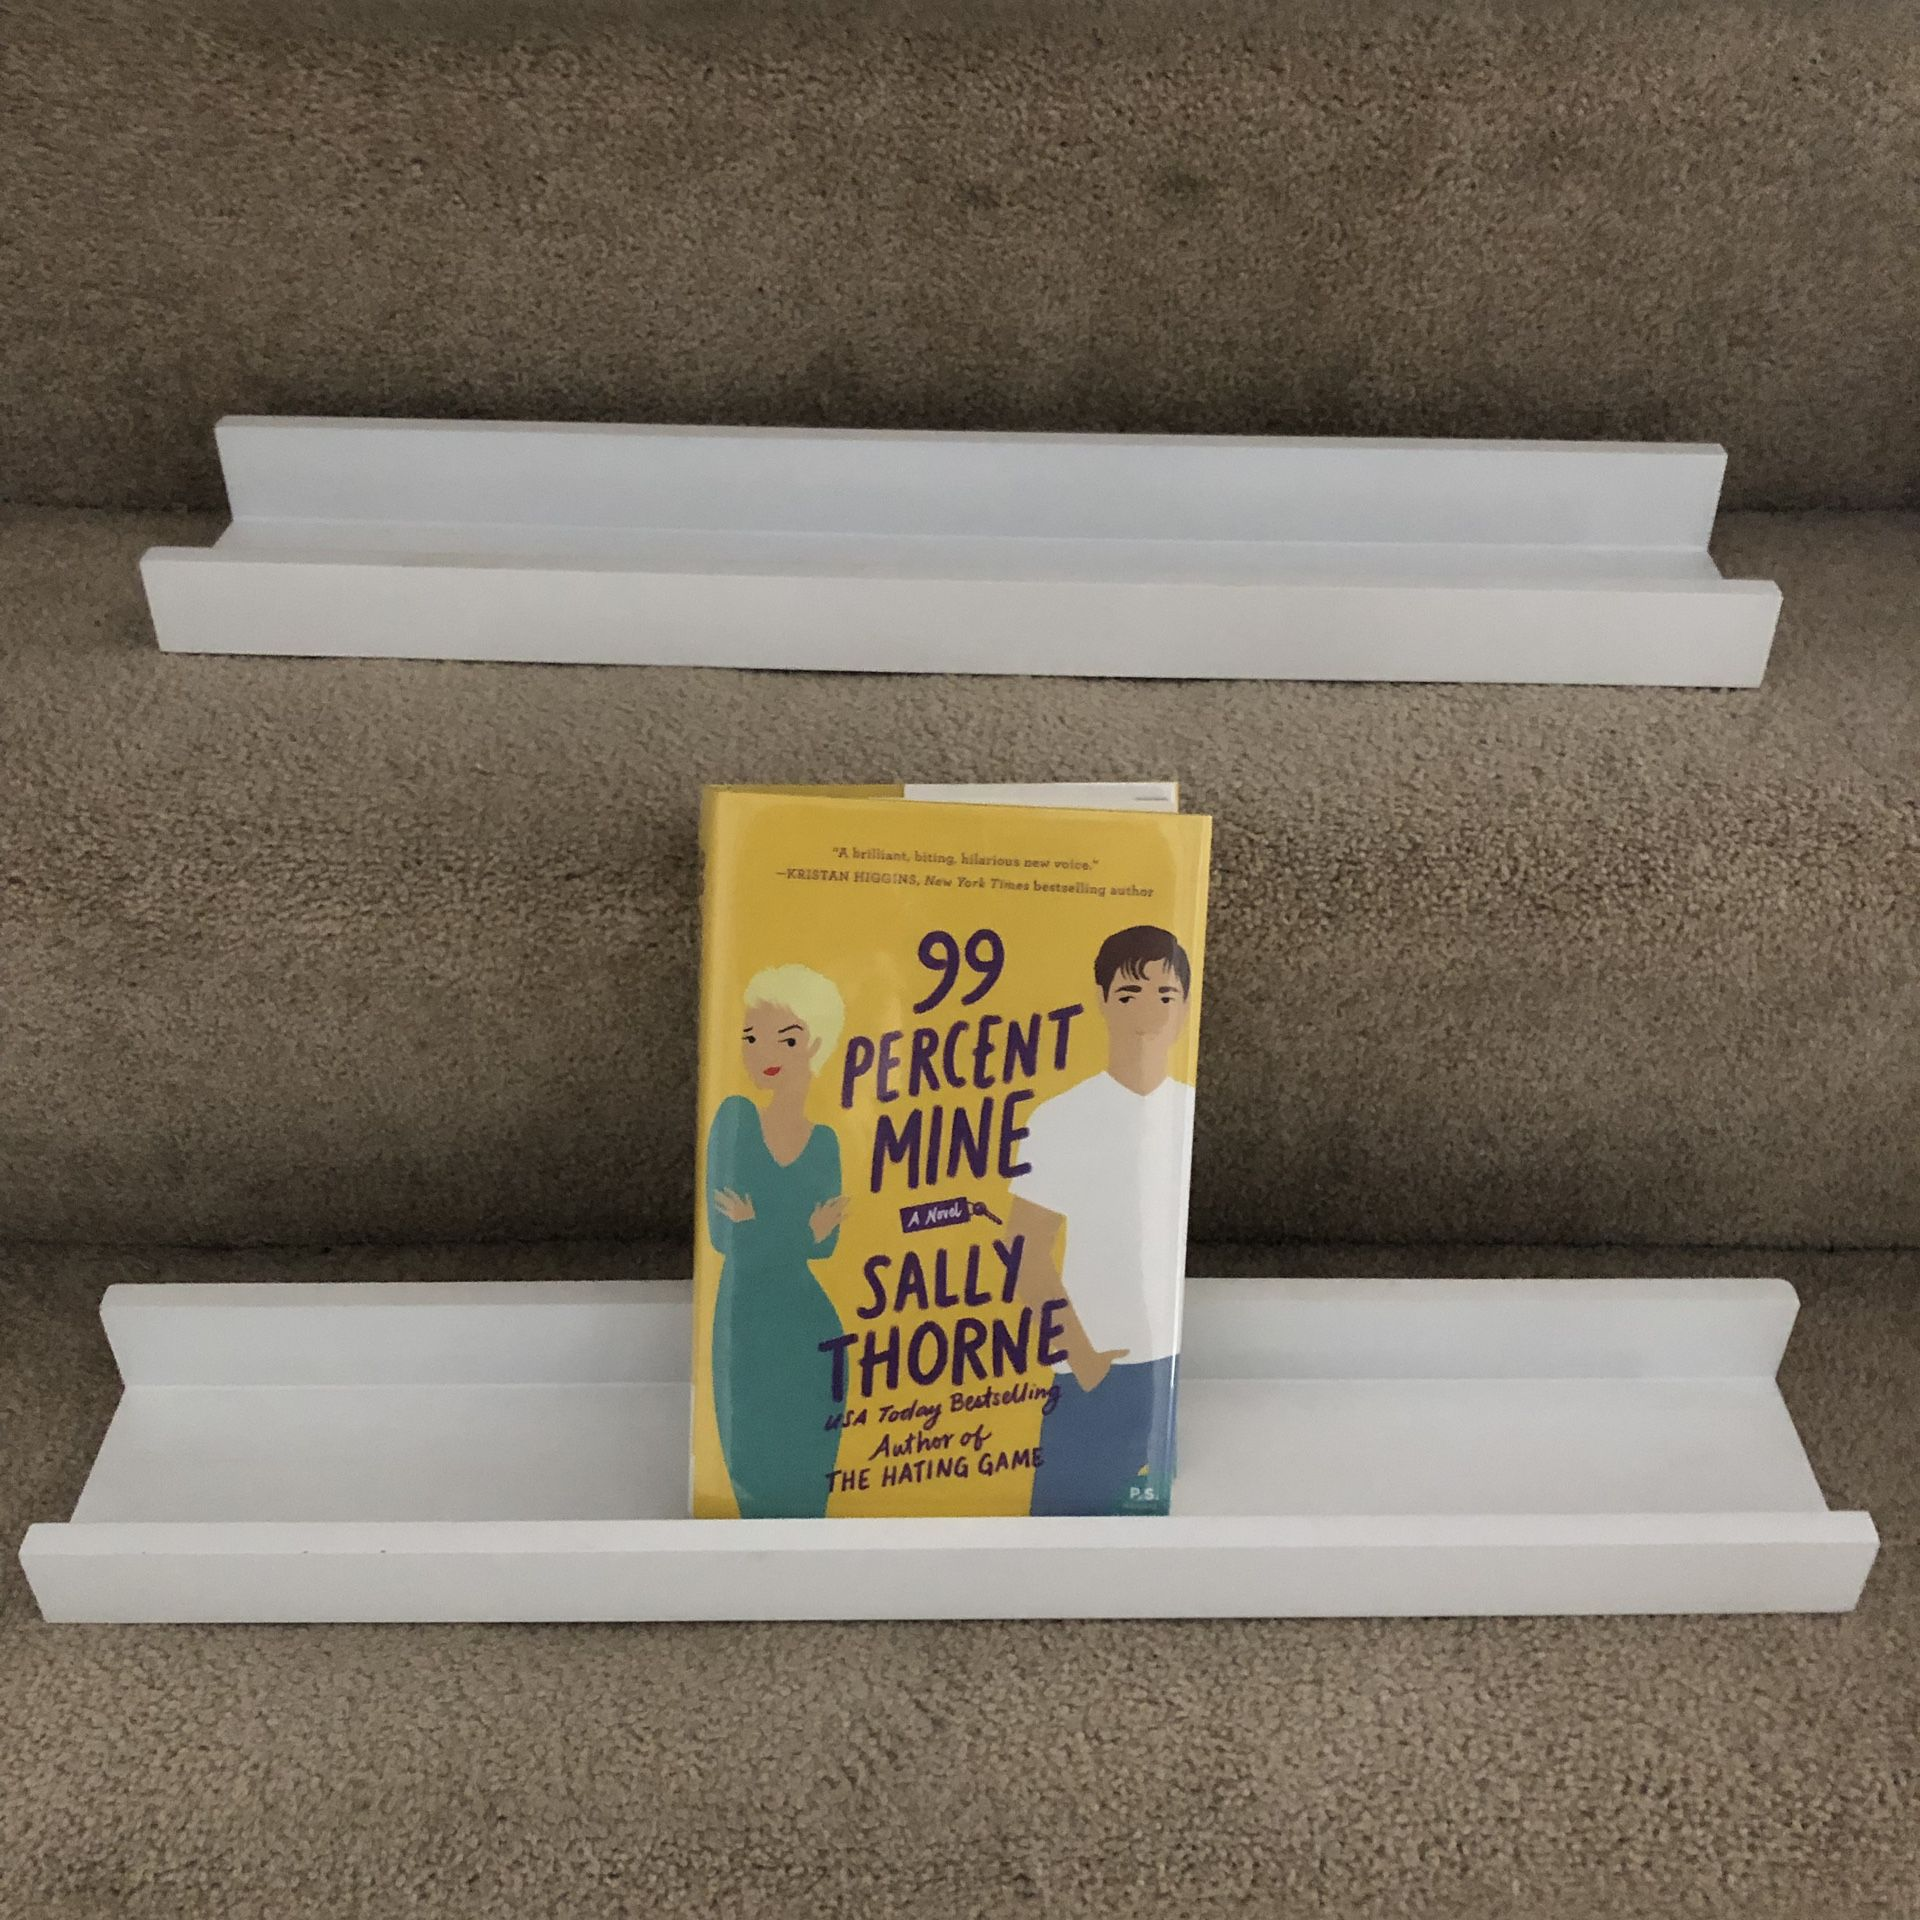 Set of two white book shelves